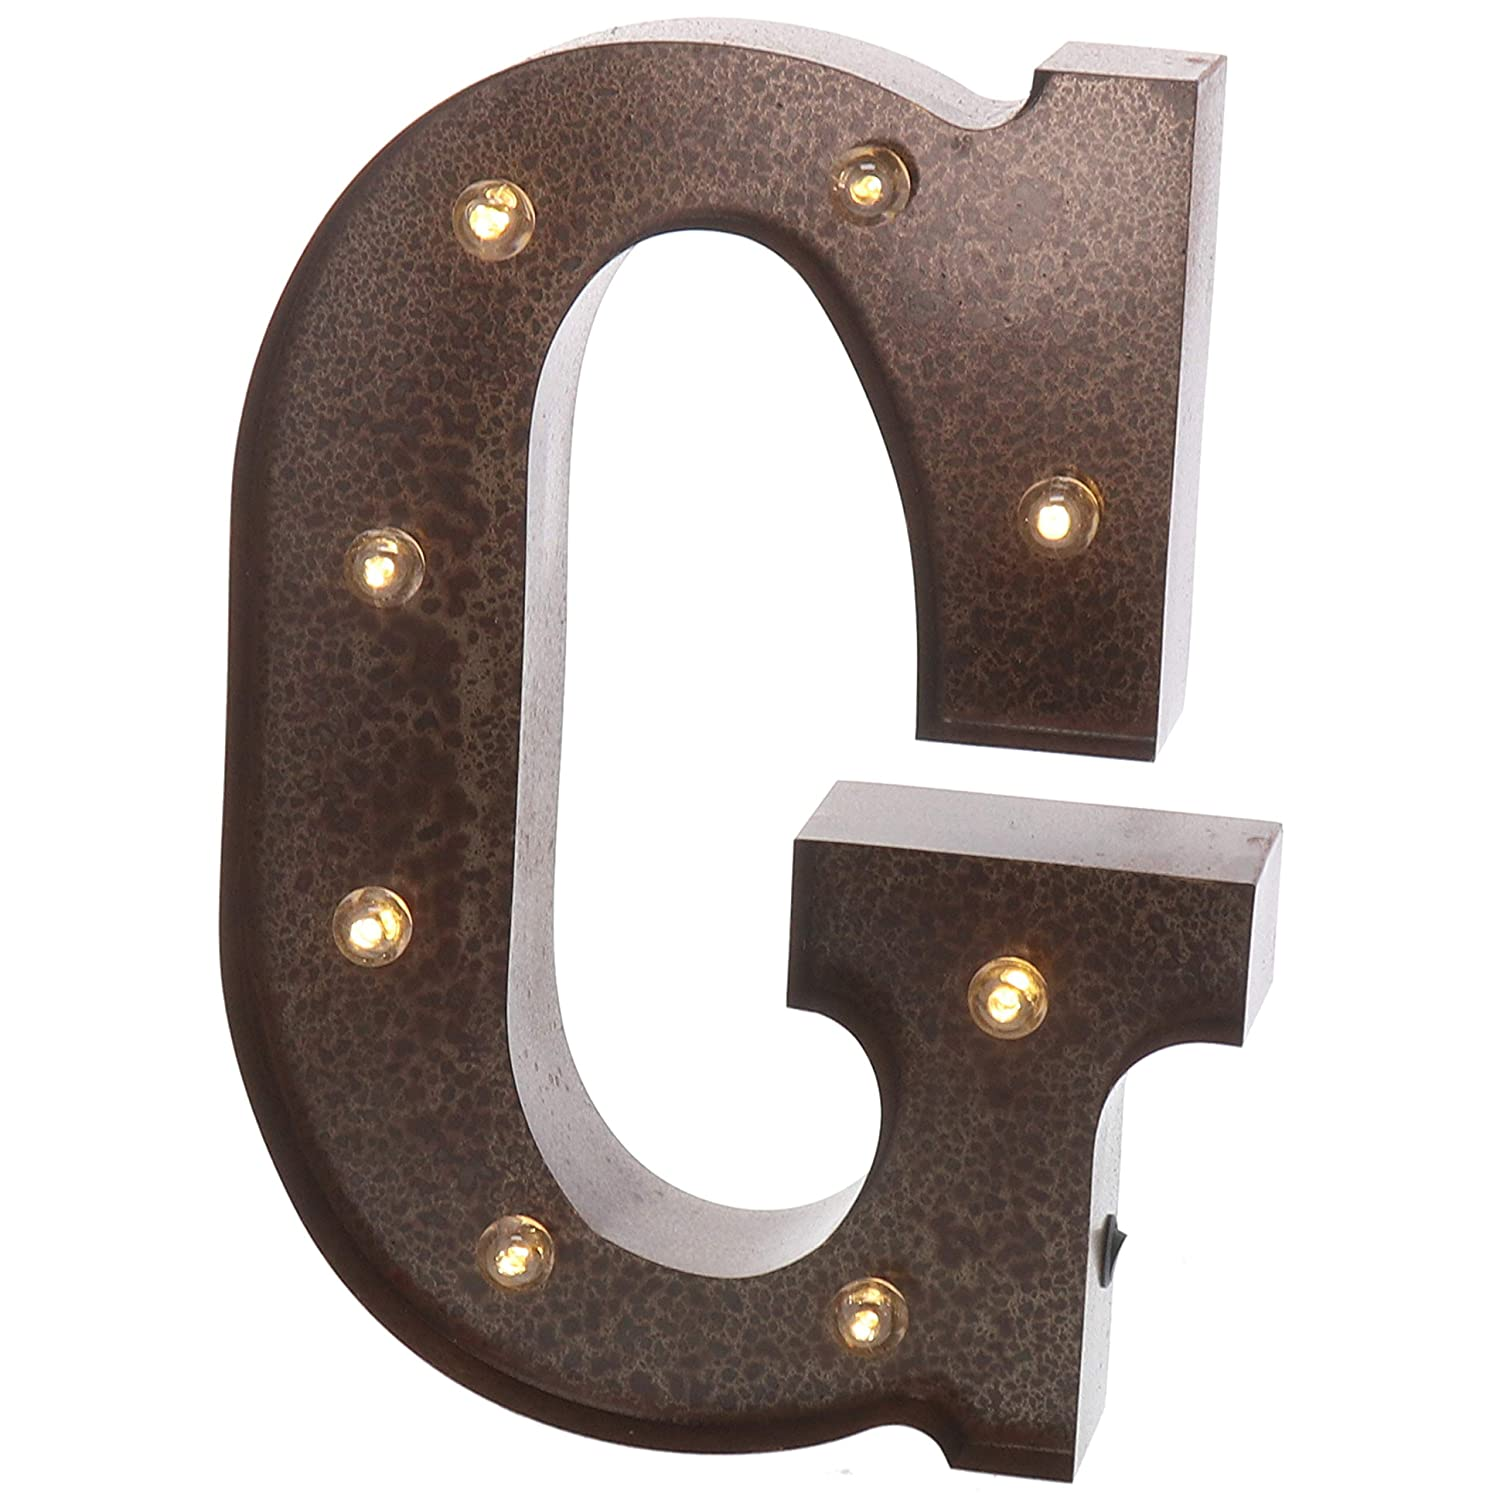 "Barnyard Designs Metal Marquee Letter G Light Up Wall Initial Wedding, Home and Bar Decoration 12"" (Rust)"